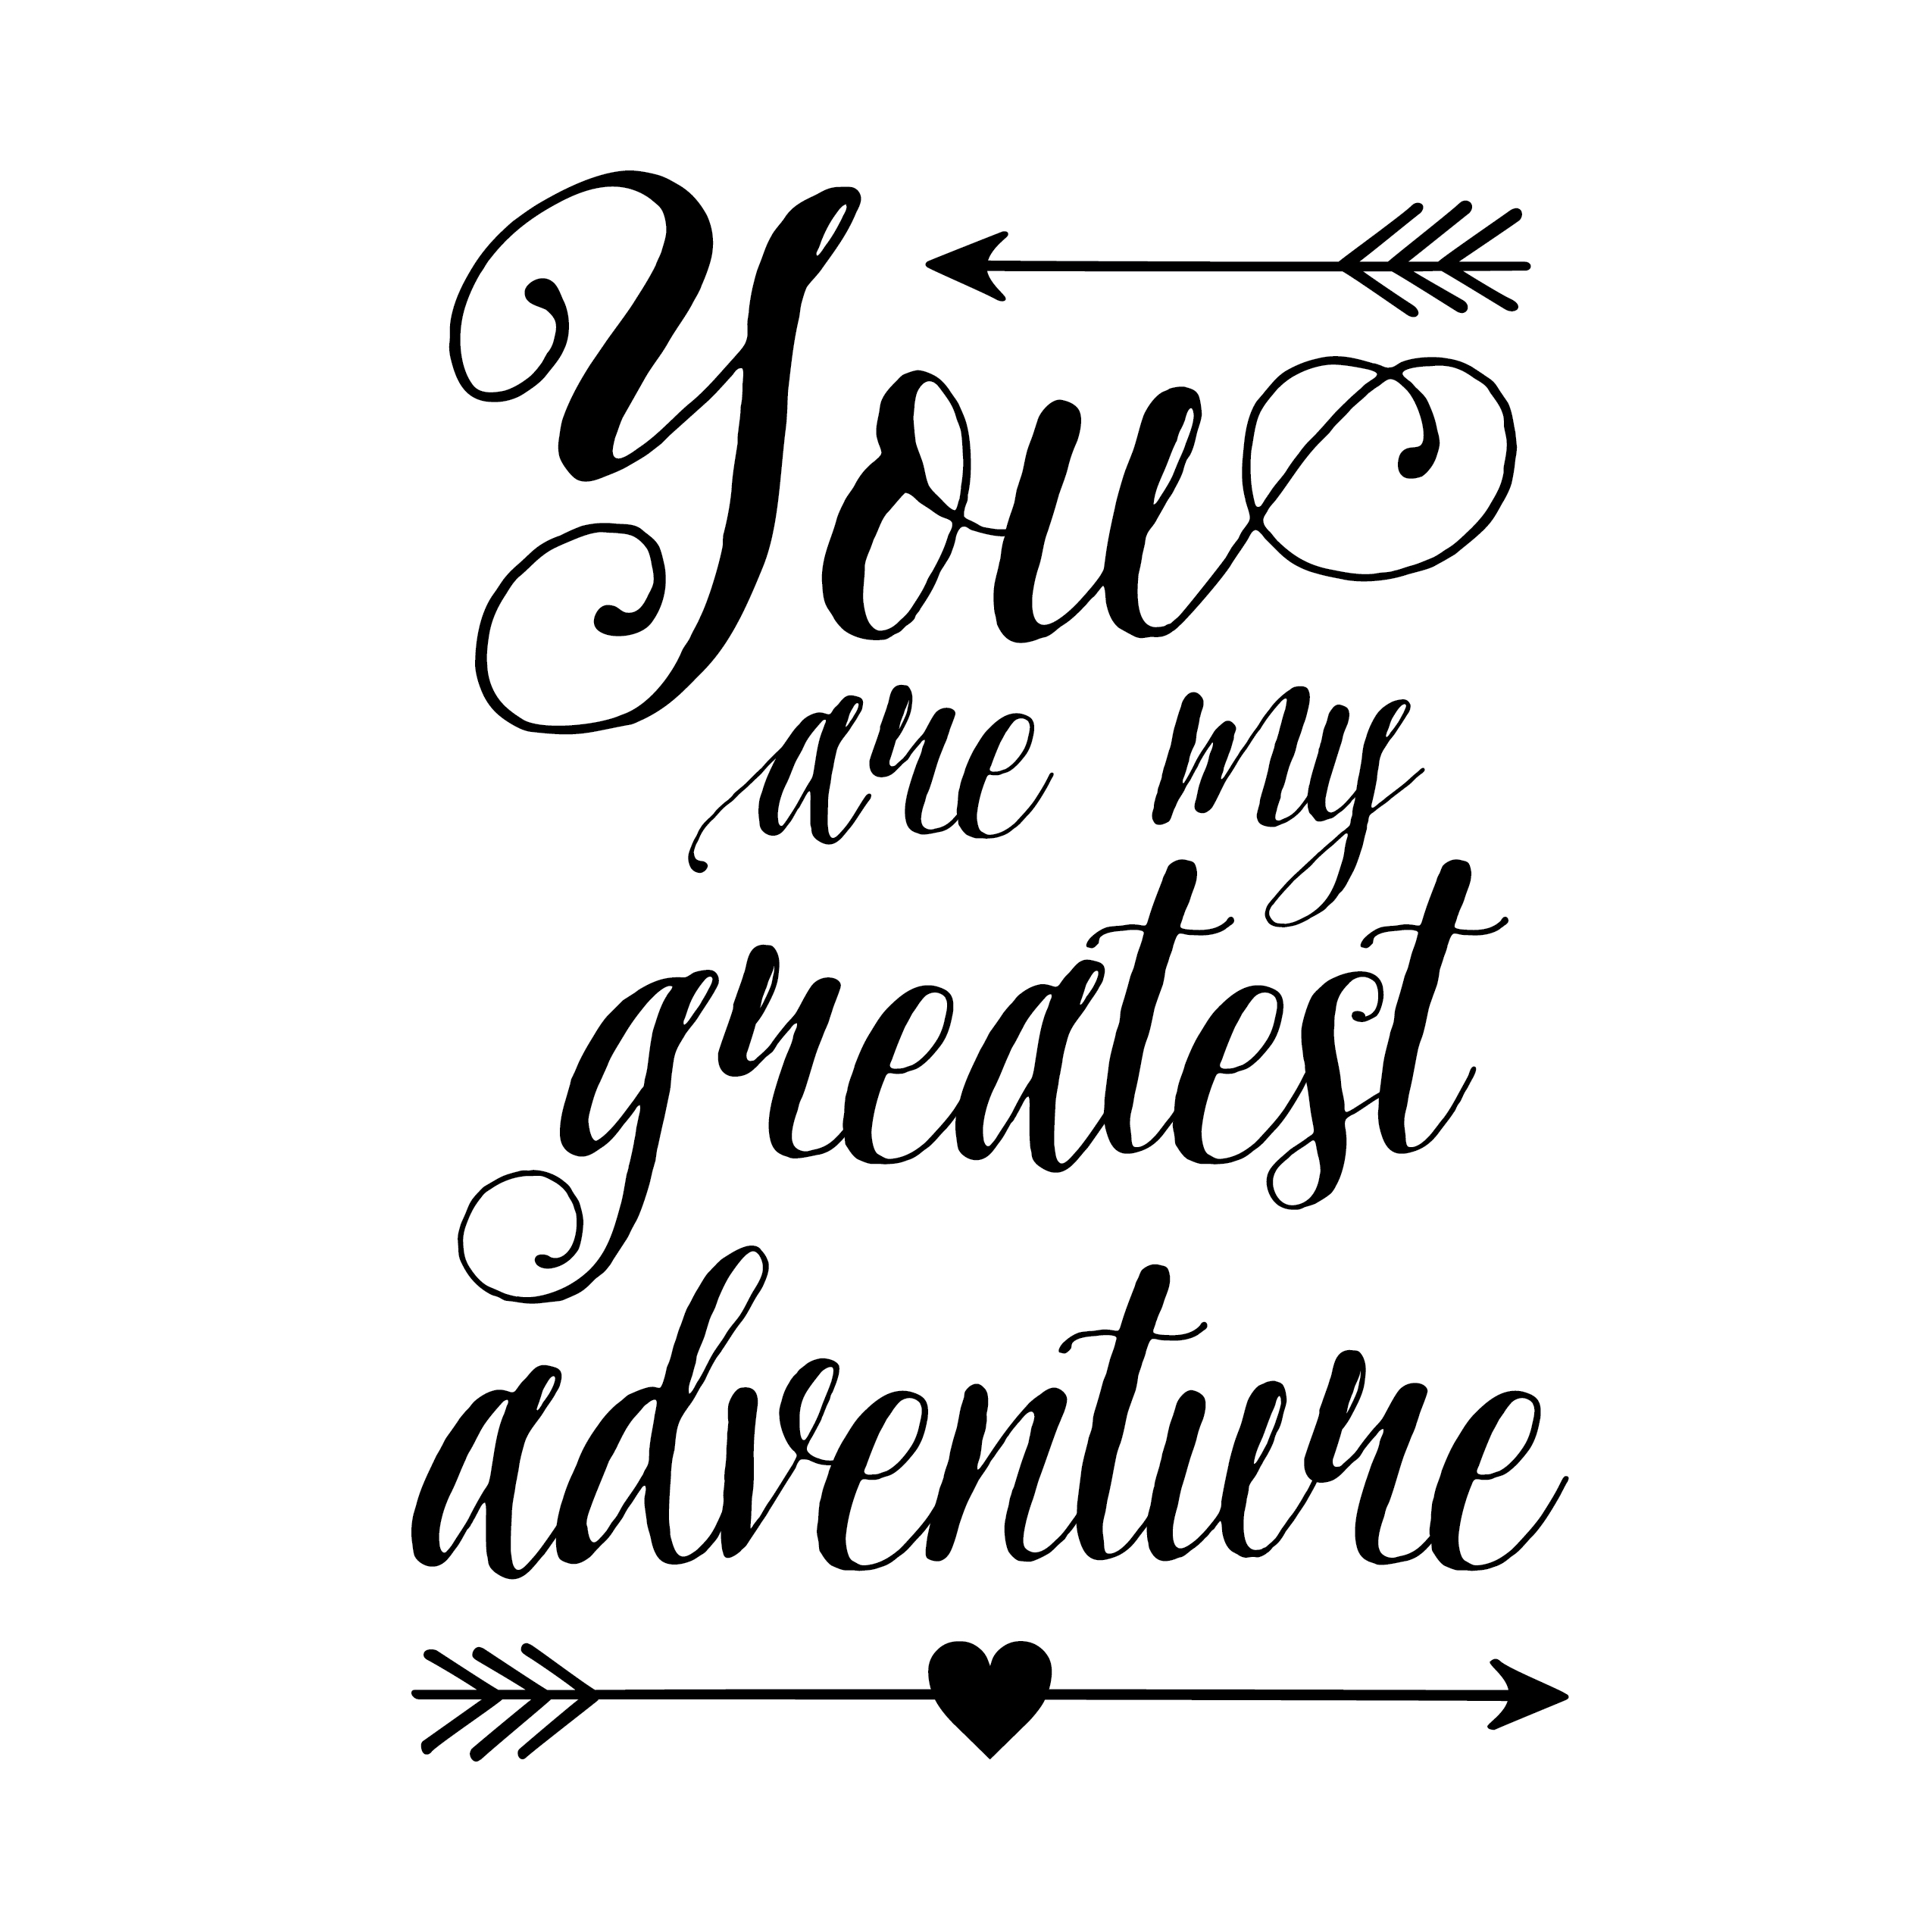 Nursery Wall Stickers Next You Are My Greatest Adventure Vinyl Wall Decal From Wild